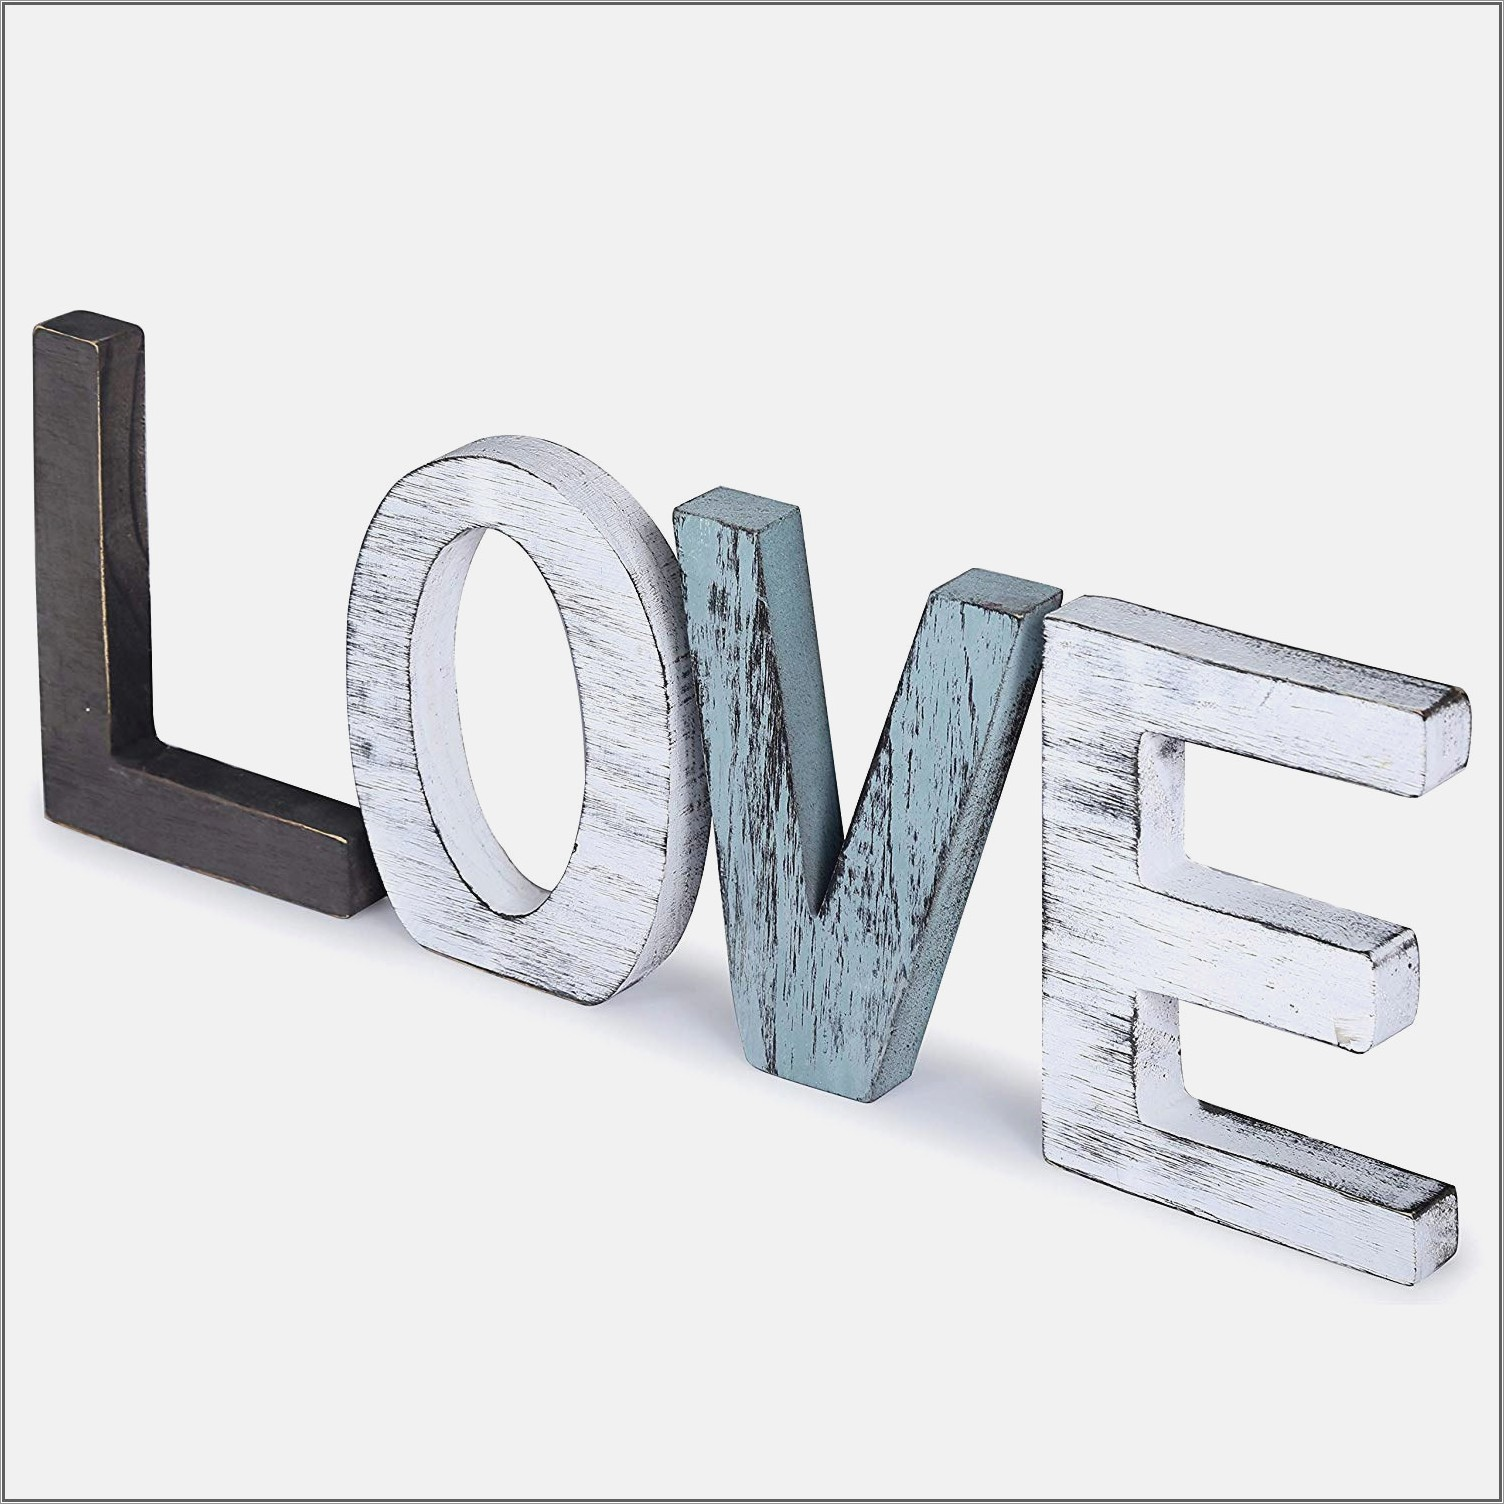 2 Inch Wooden Letters For Crafts